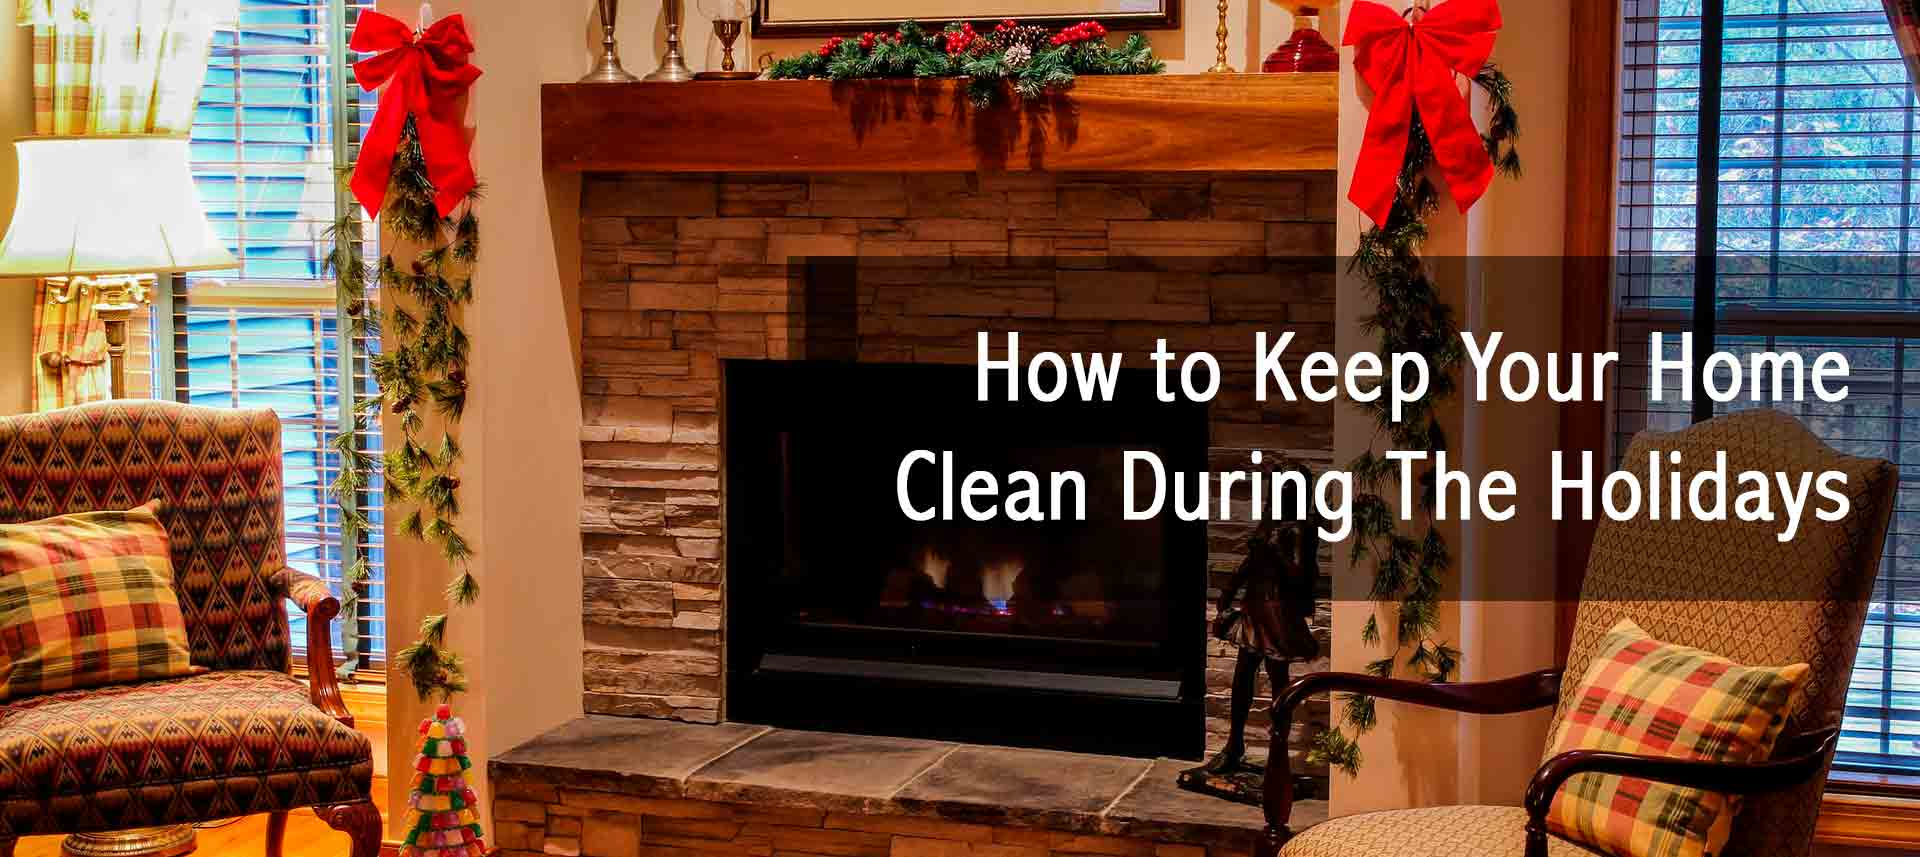 How to Keep Your Home Clean During The Holidays